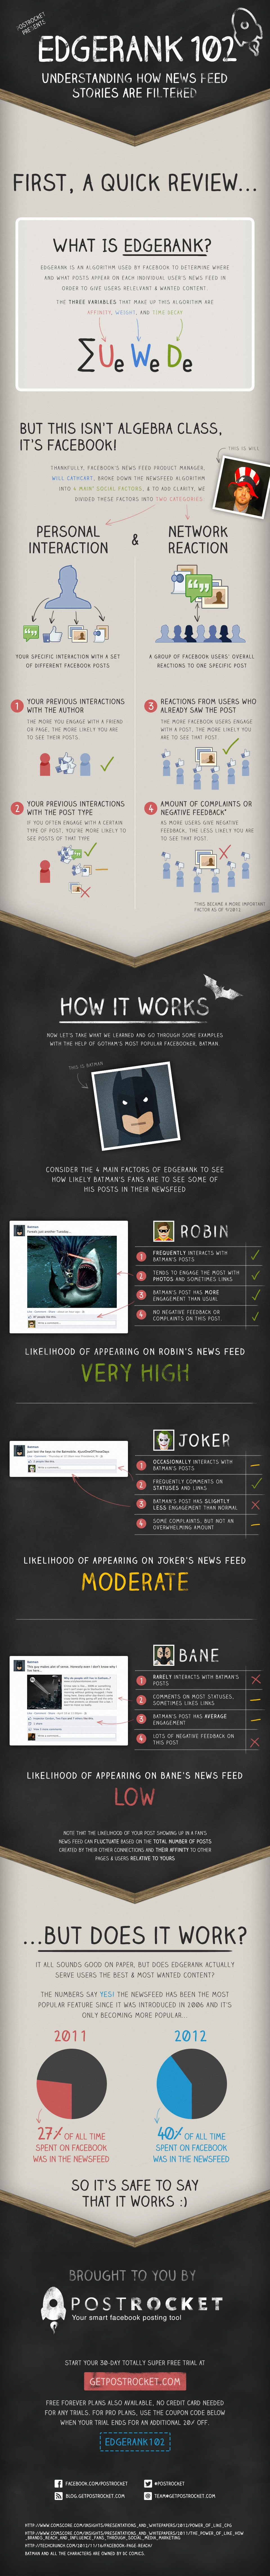 Facebook_Edgerank_Infographic